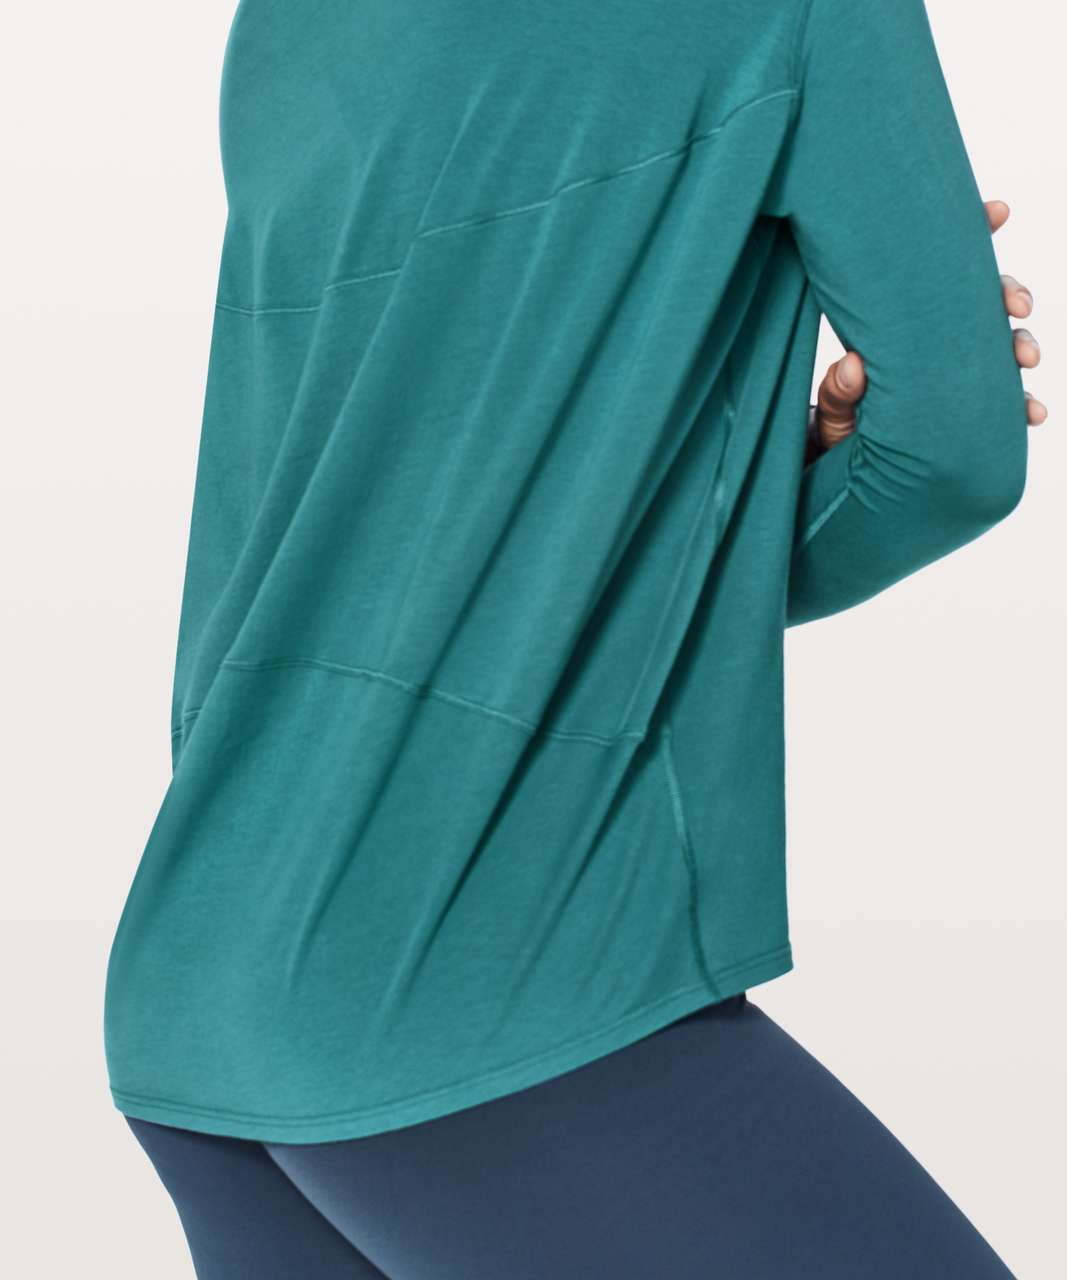 Lululemon Back In Action Long Sleeve - Desert Teal